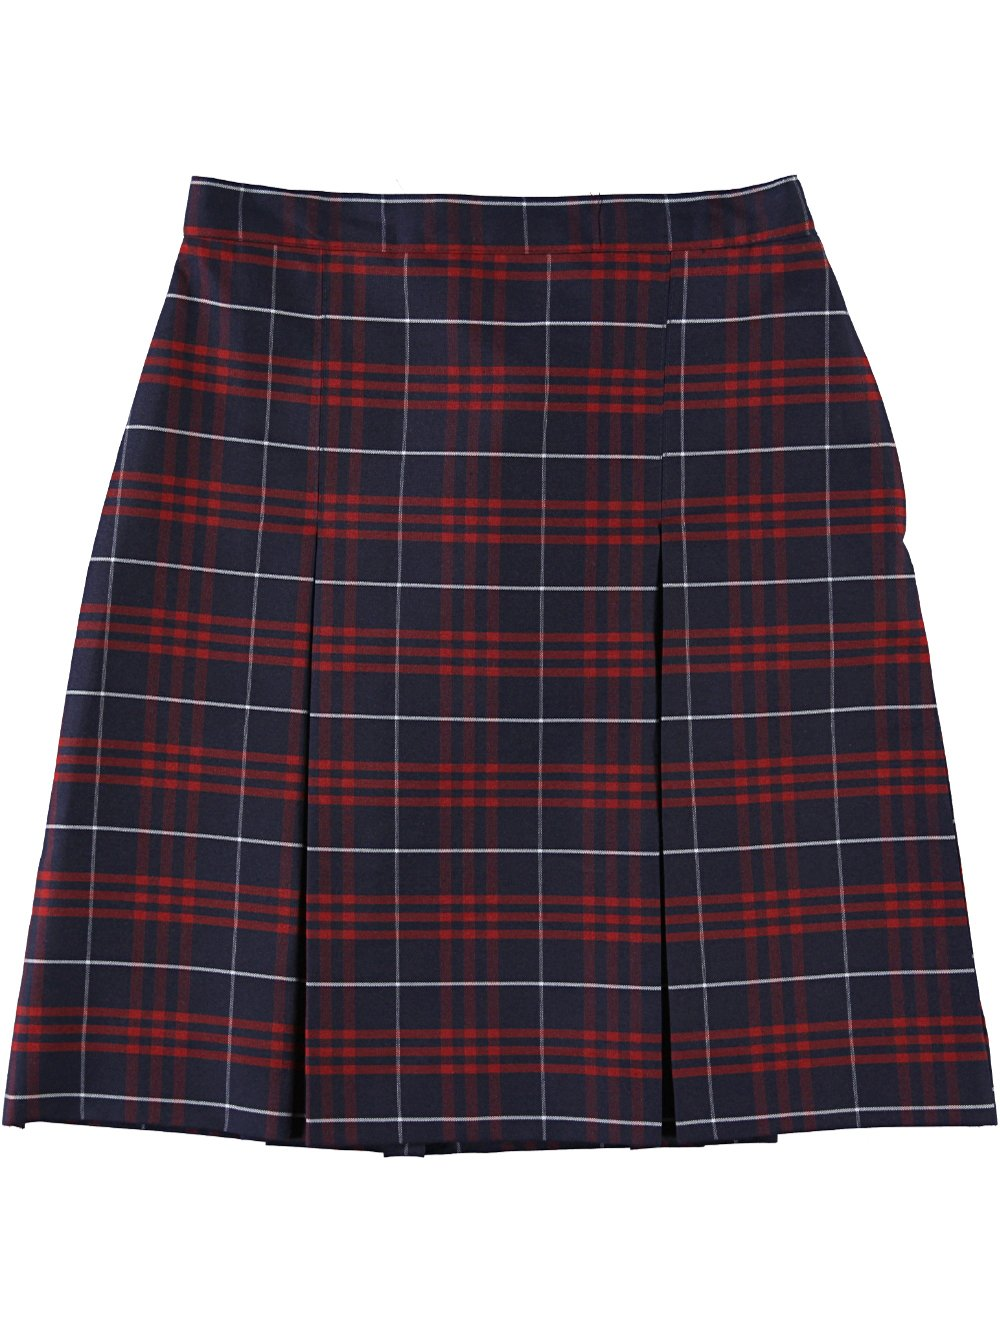 Cookie's Brand Big Girls' Box Pleat Skirt - navy/red/whiteplaid #37, 7